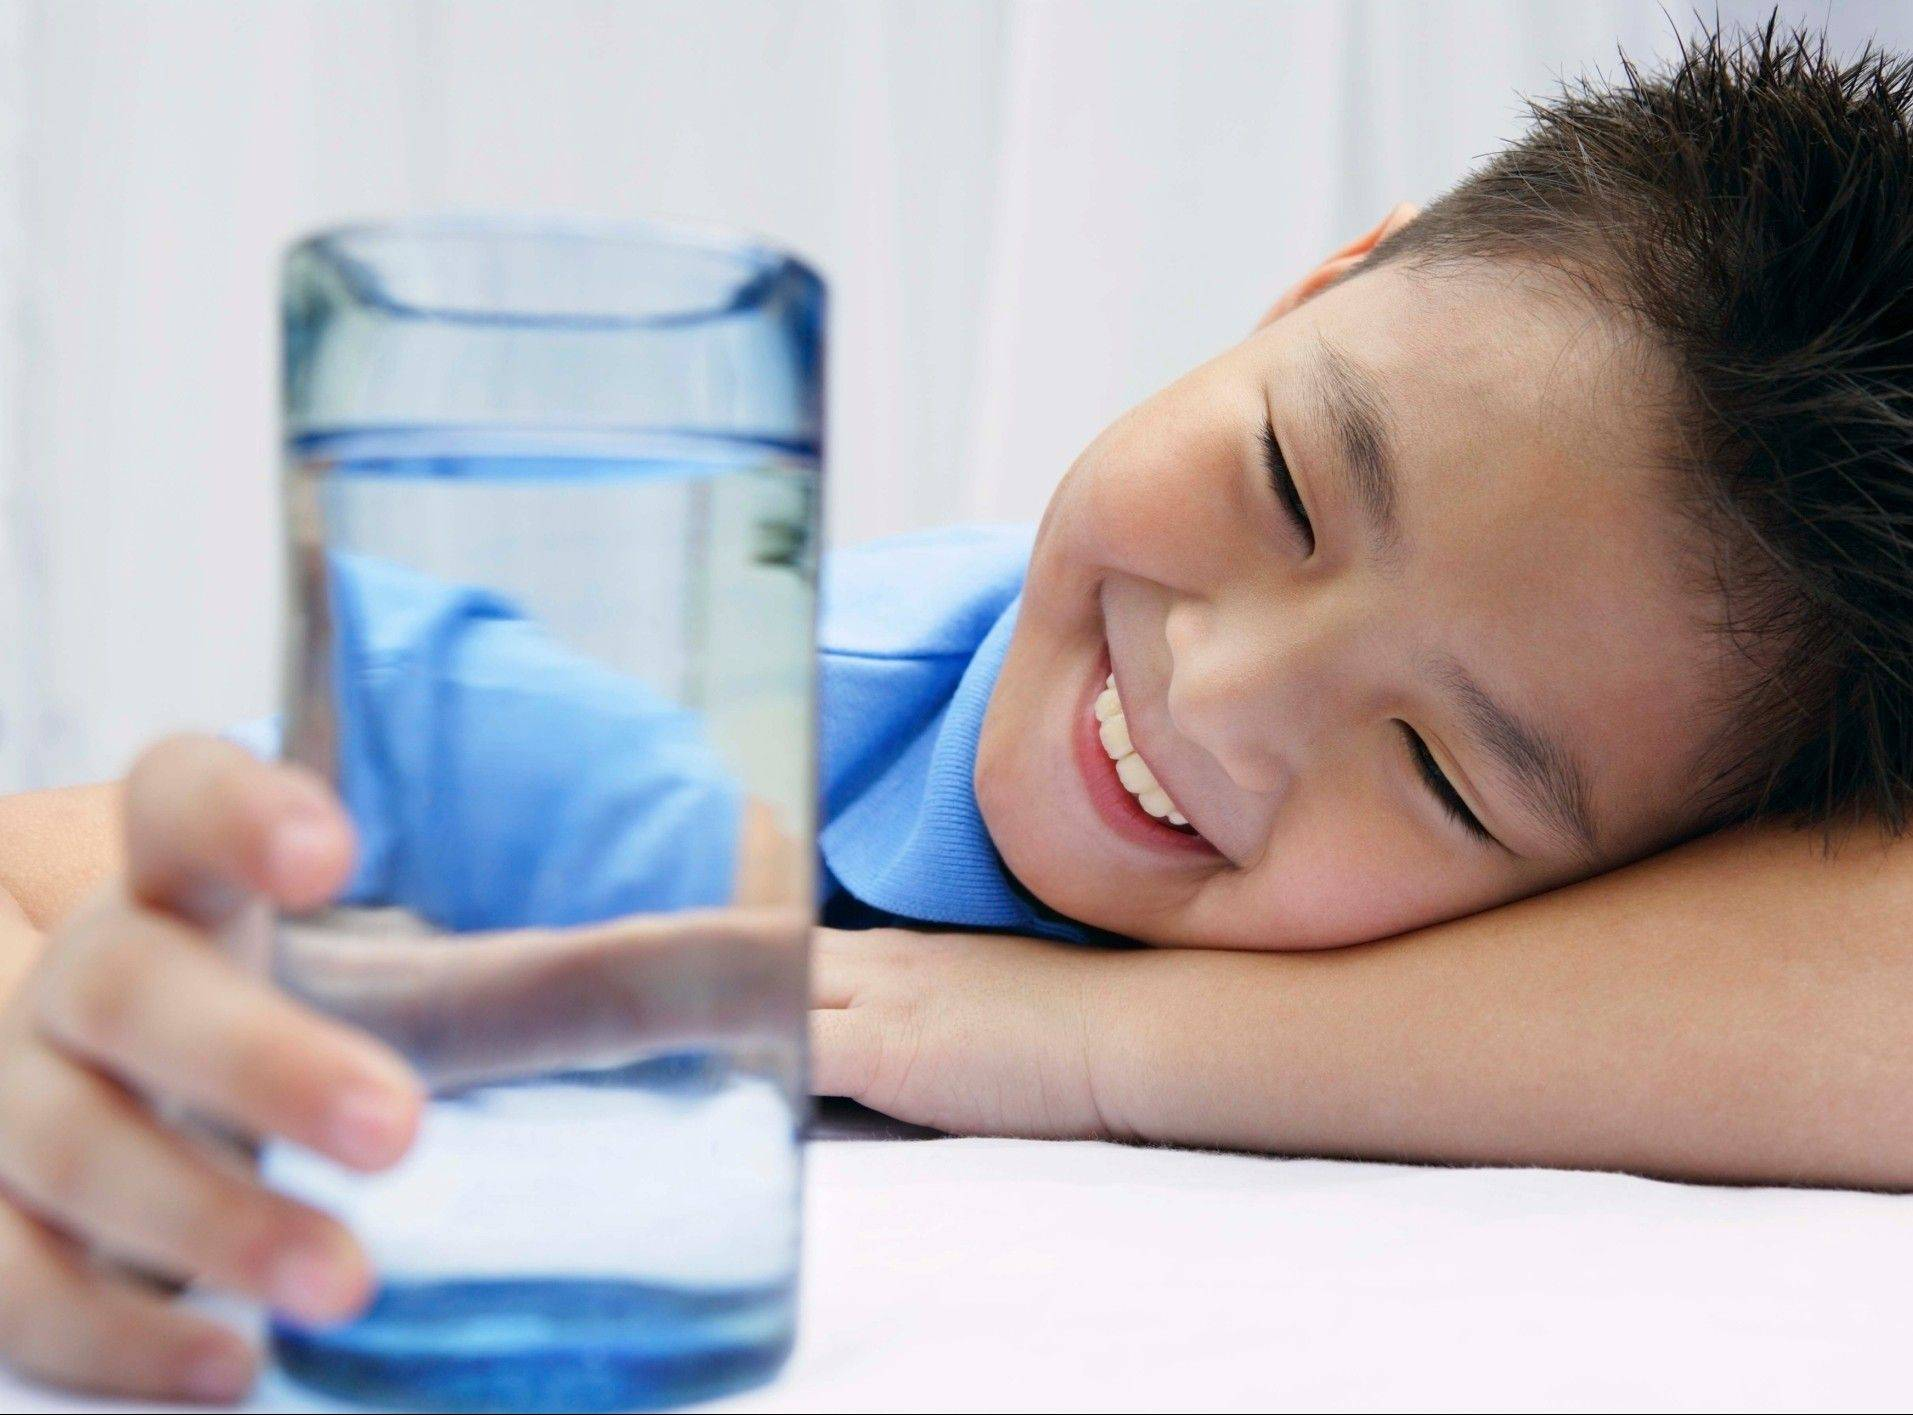 Children are encouraged to drink more water and less soda and juice, and now there's a website to help families achieve that goal.